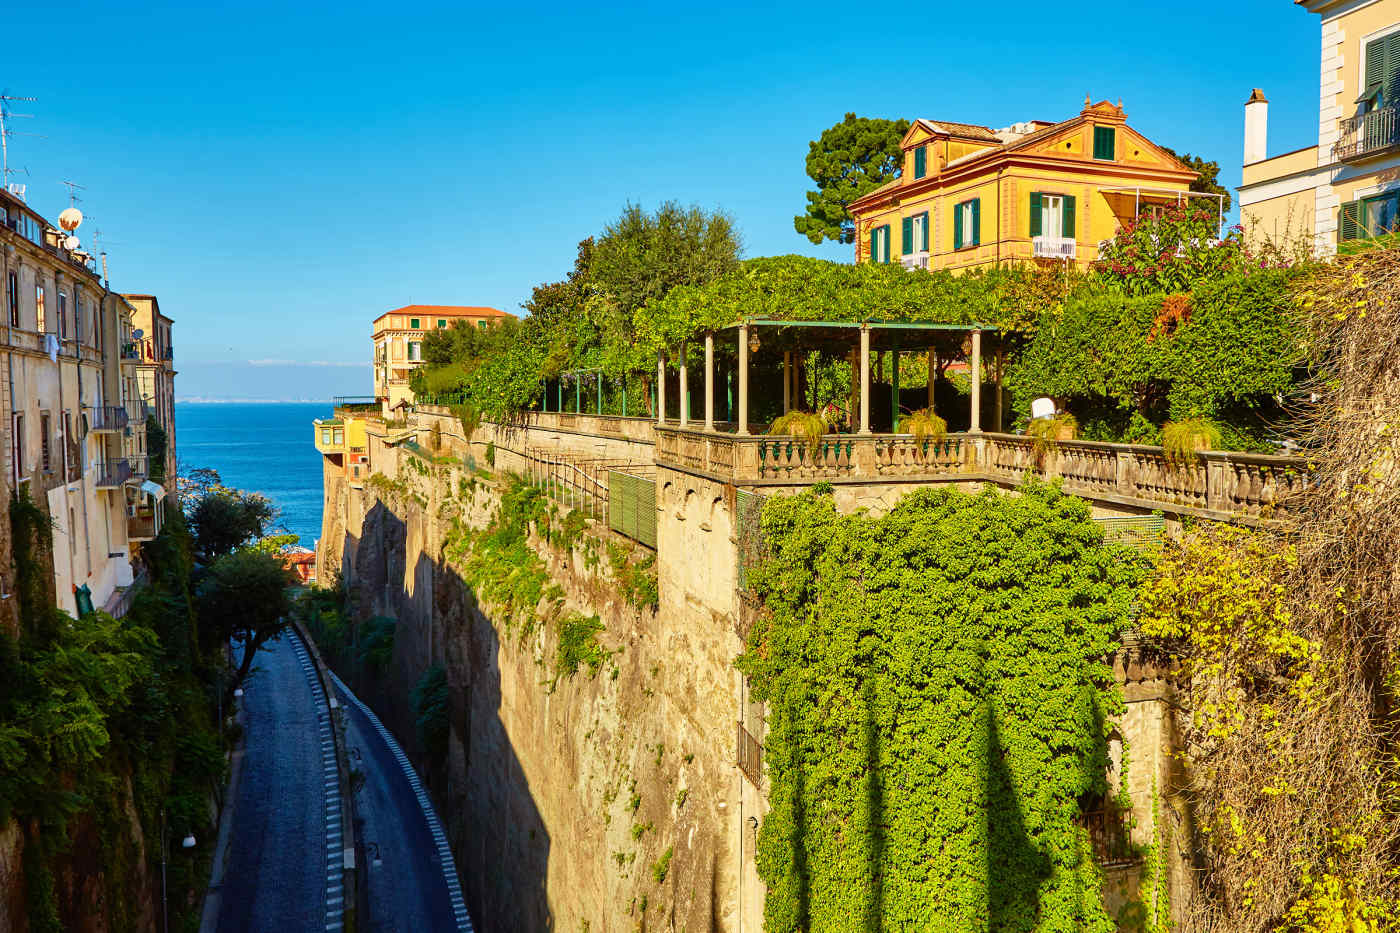 Road to the Sea in Sorrento, Italy